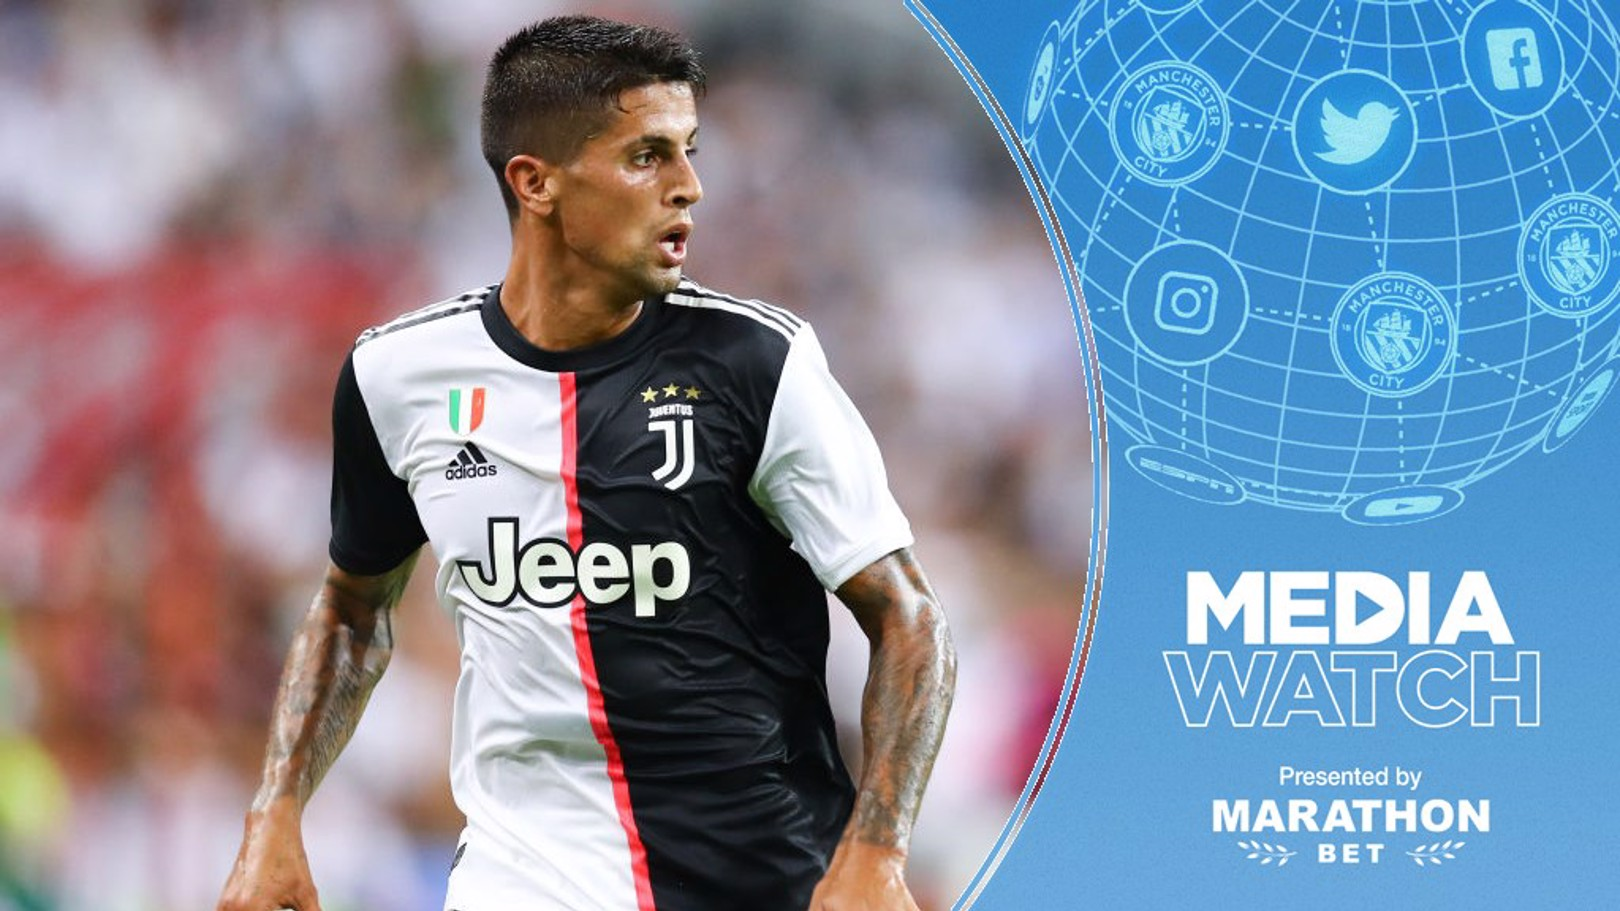 MEDIA WATCH: There are more rumours surrounding City and Joao Cancelo.